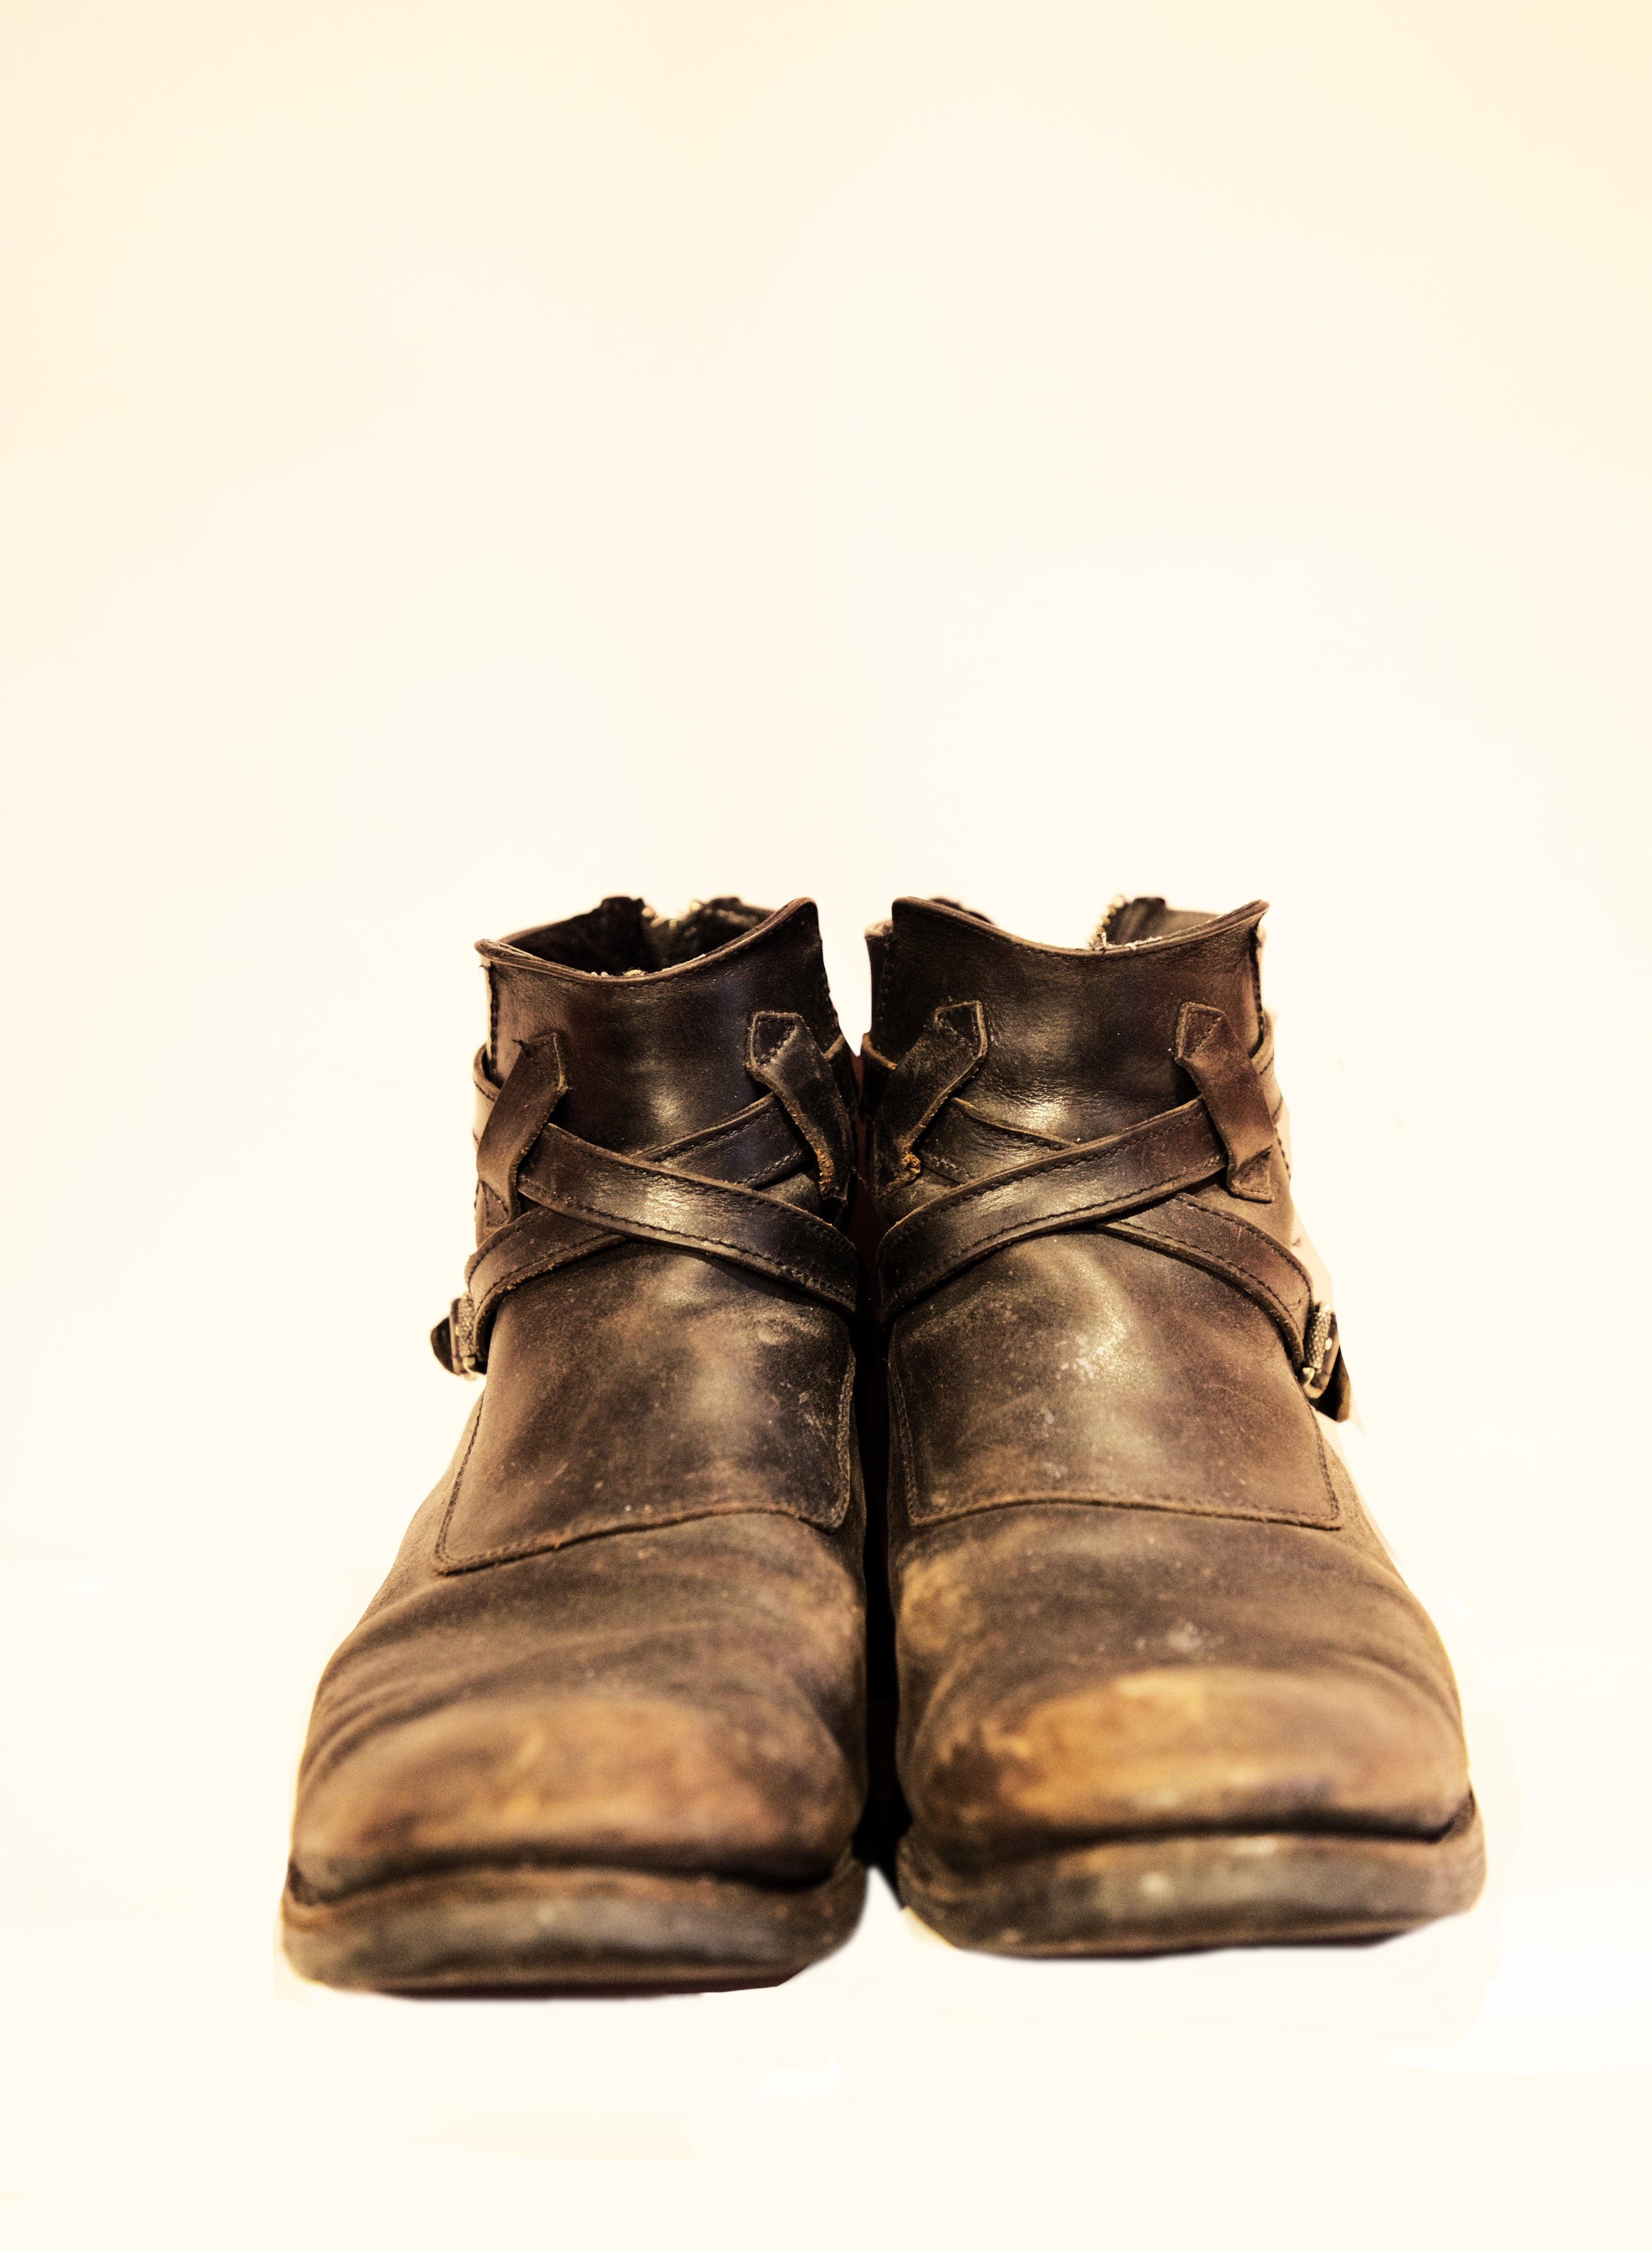 Vintage FRYE Ankle Boots (Size 11)